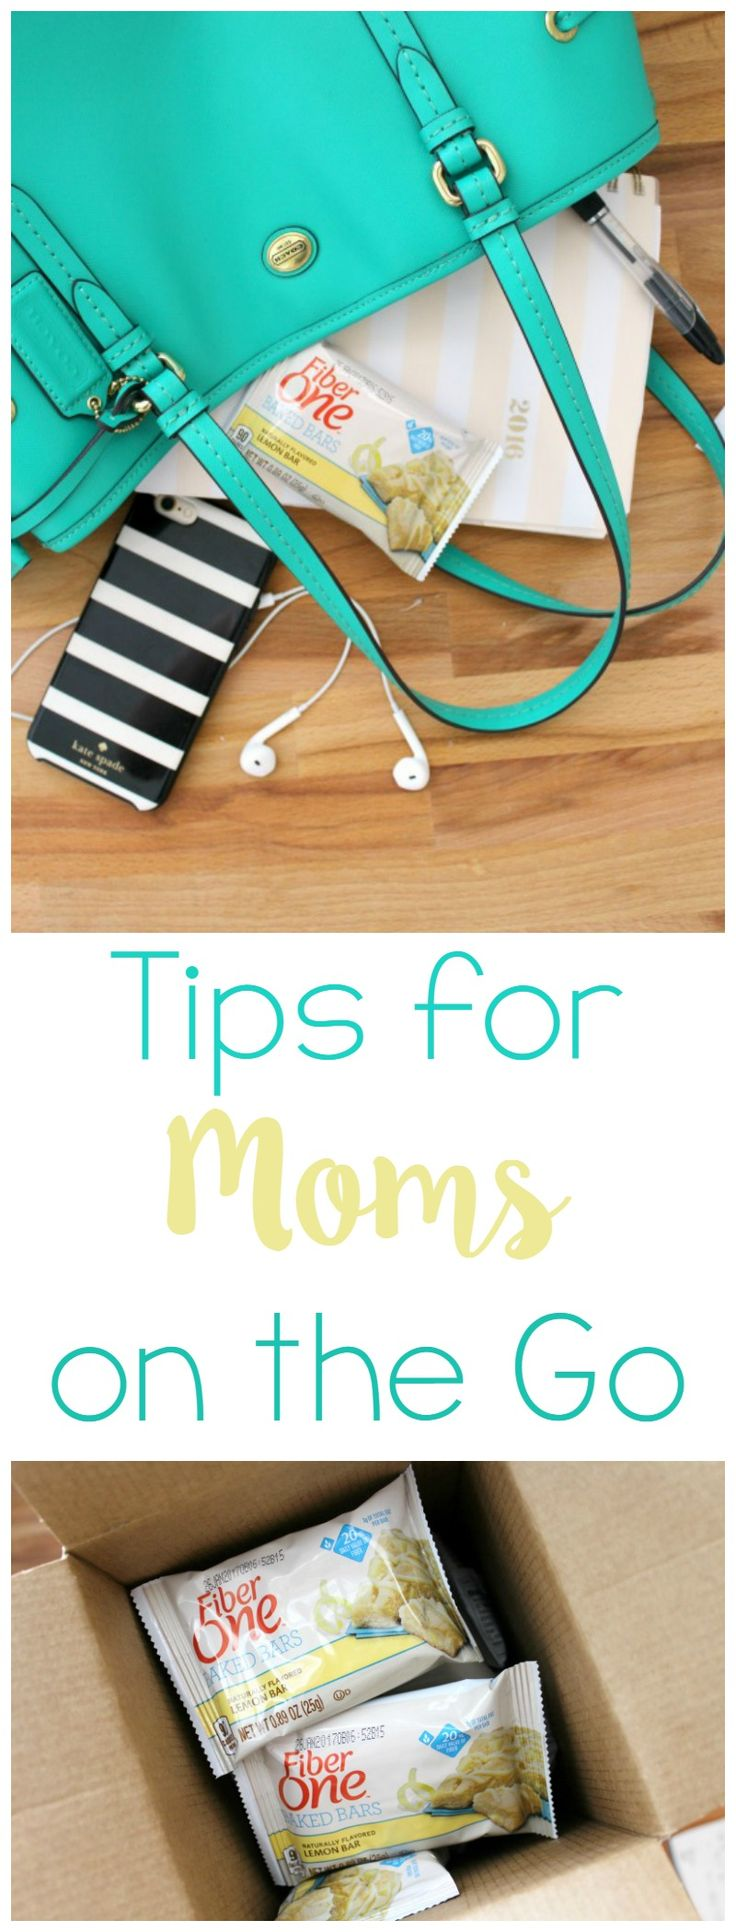 Tips for Moms on the Go - From what to keep in your bag to what to snack on when cravings hit, these are great tips for any mom! AD